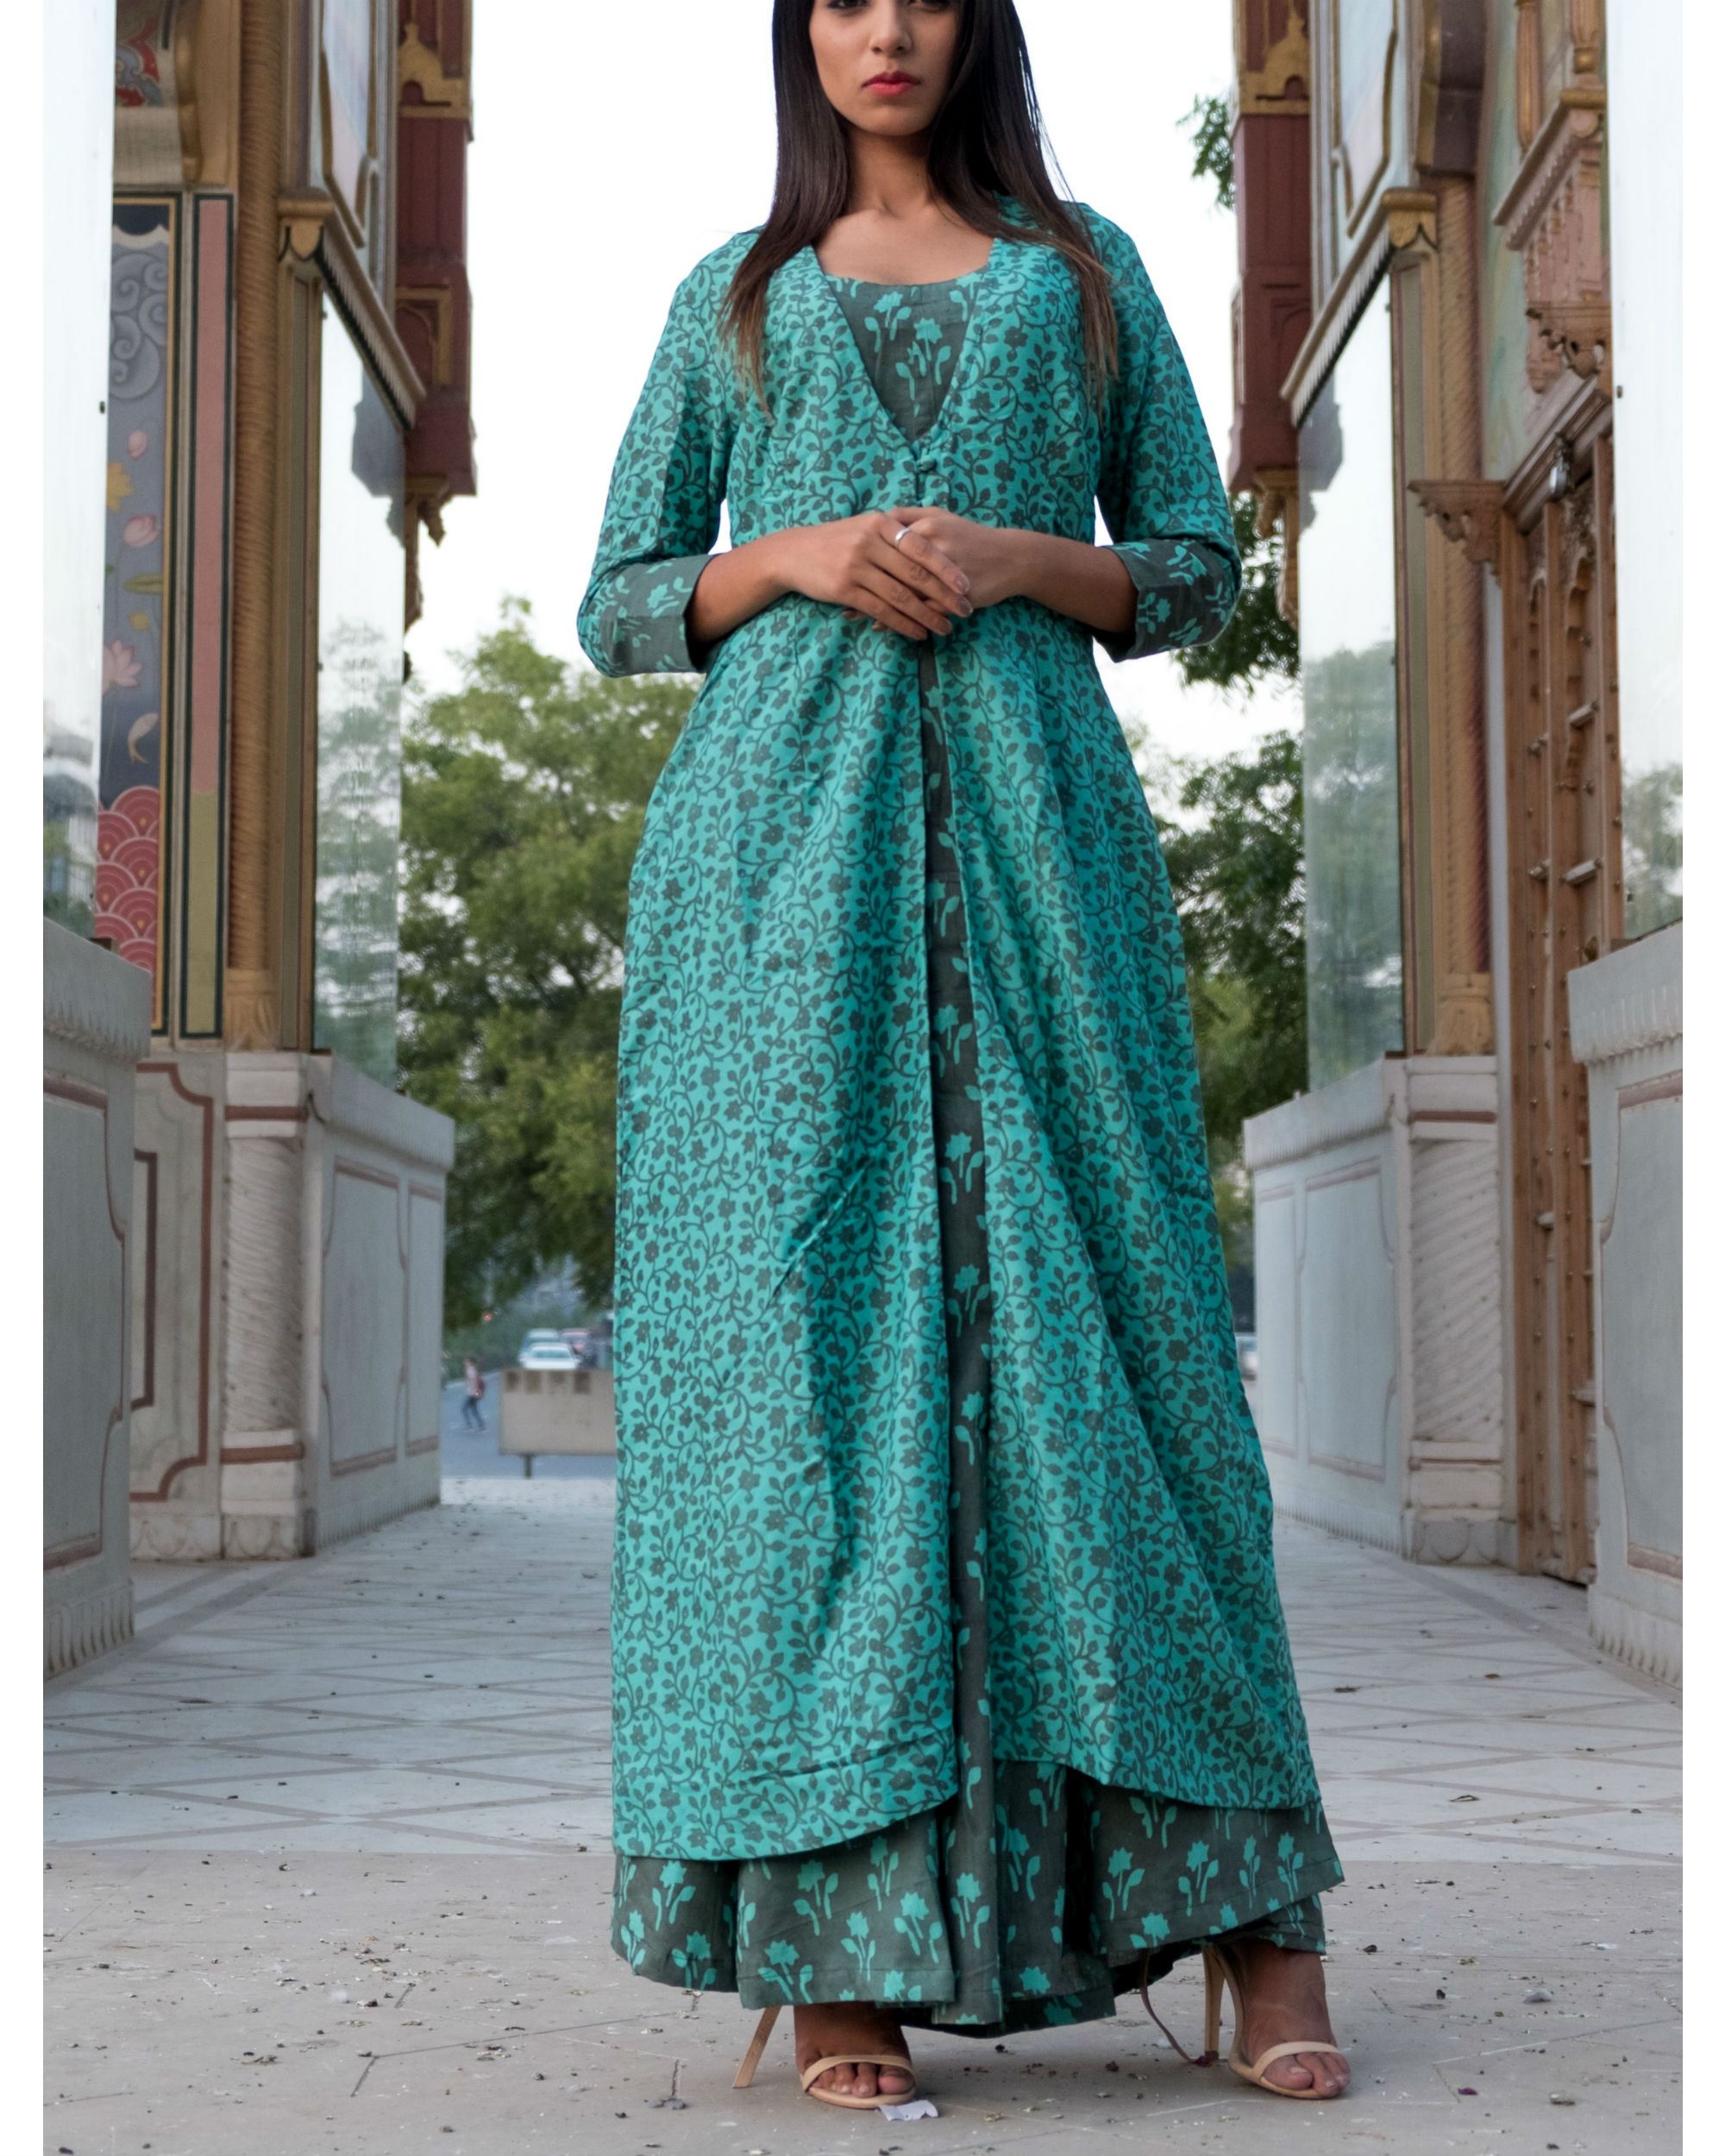 Teal grey printed double layered dress